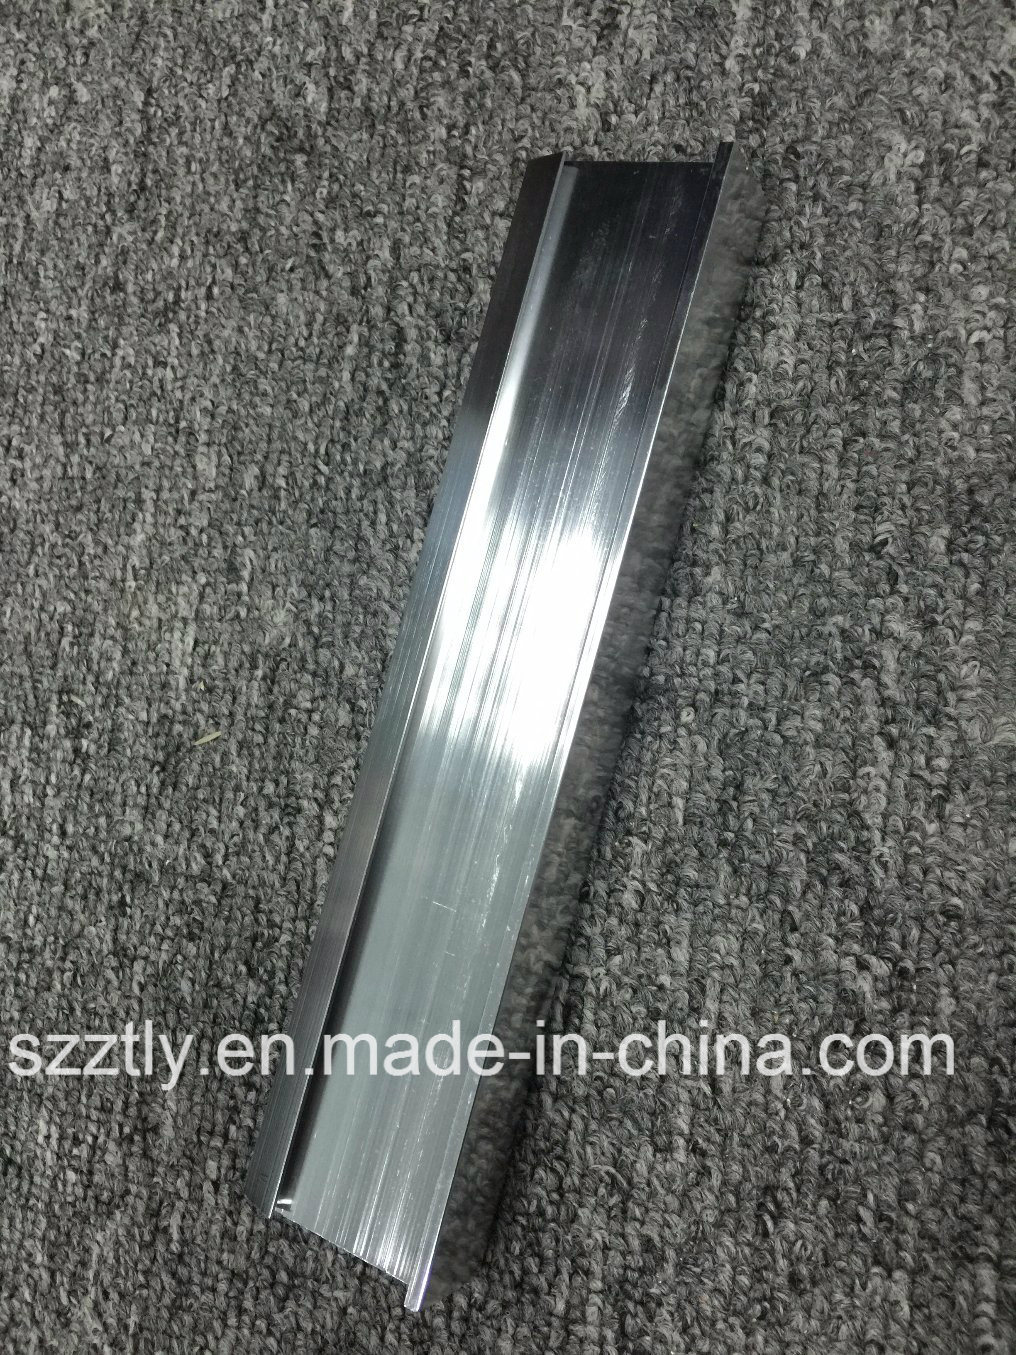 Bright Polished Anodised Aluminium Extrusion Profile